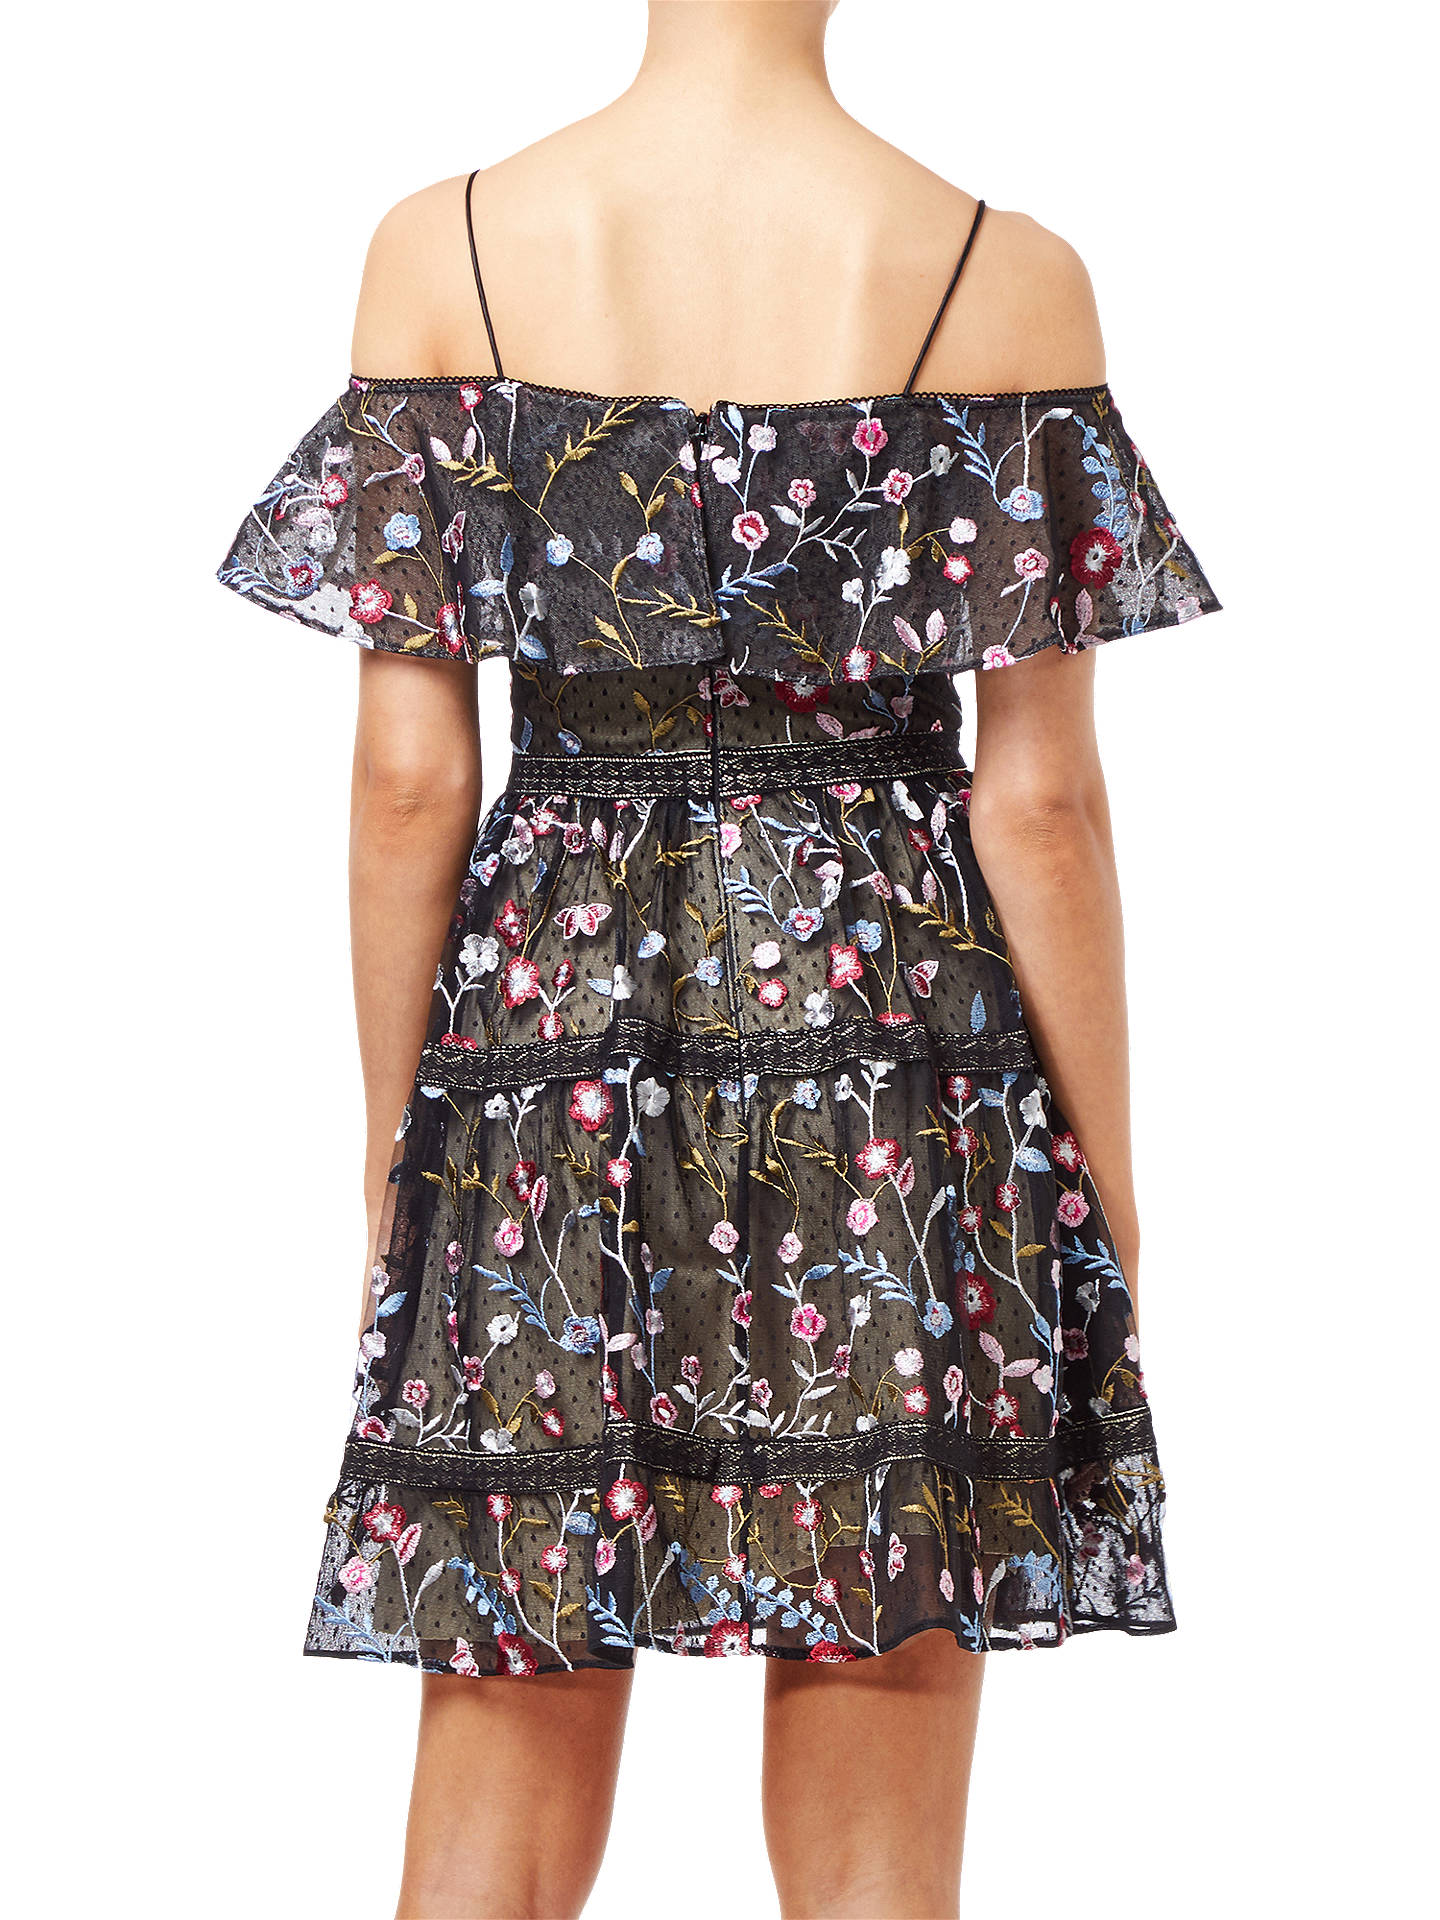 Buy Adrianna Papell Floral Embroidery Party Dress, Black/Multi, 8 Online at johnlewis.com